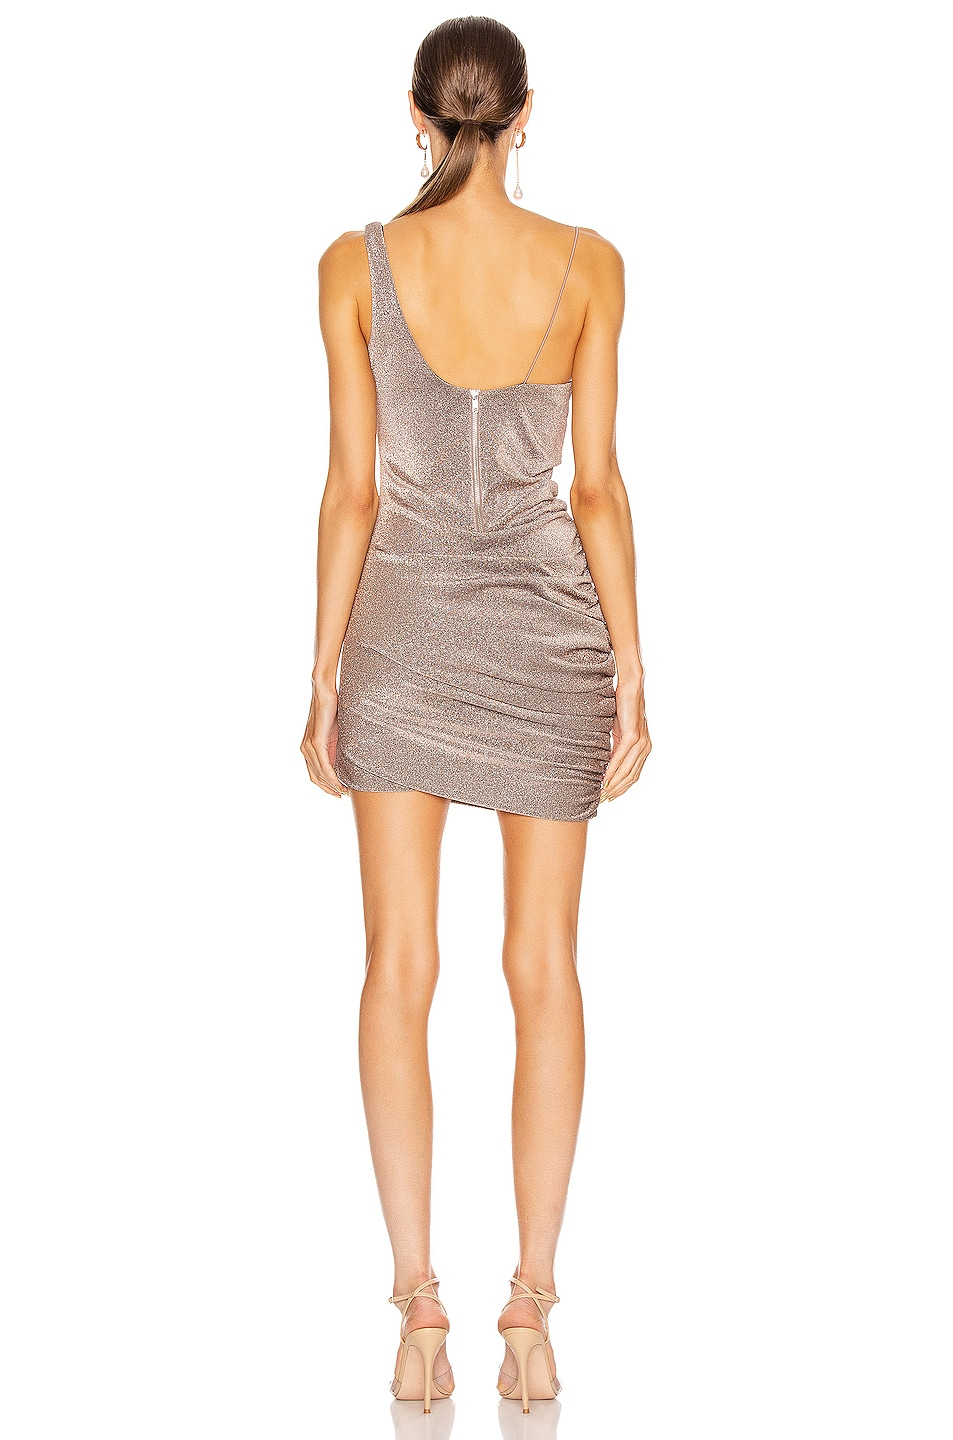 Image 4 of ALIX NYC Emmons Dress in Mercury Glitter